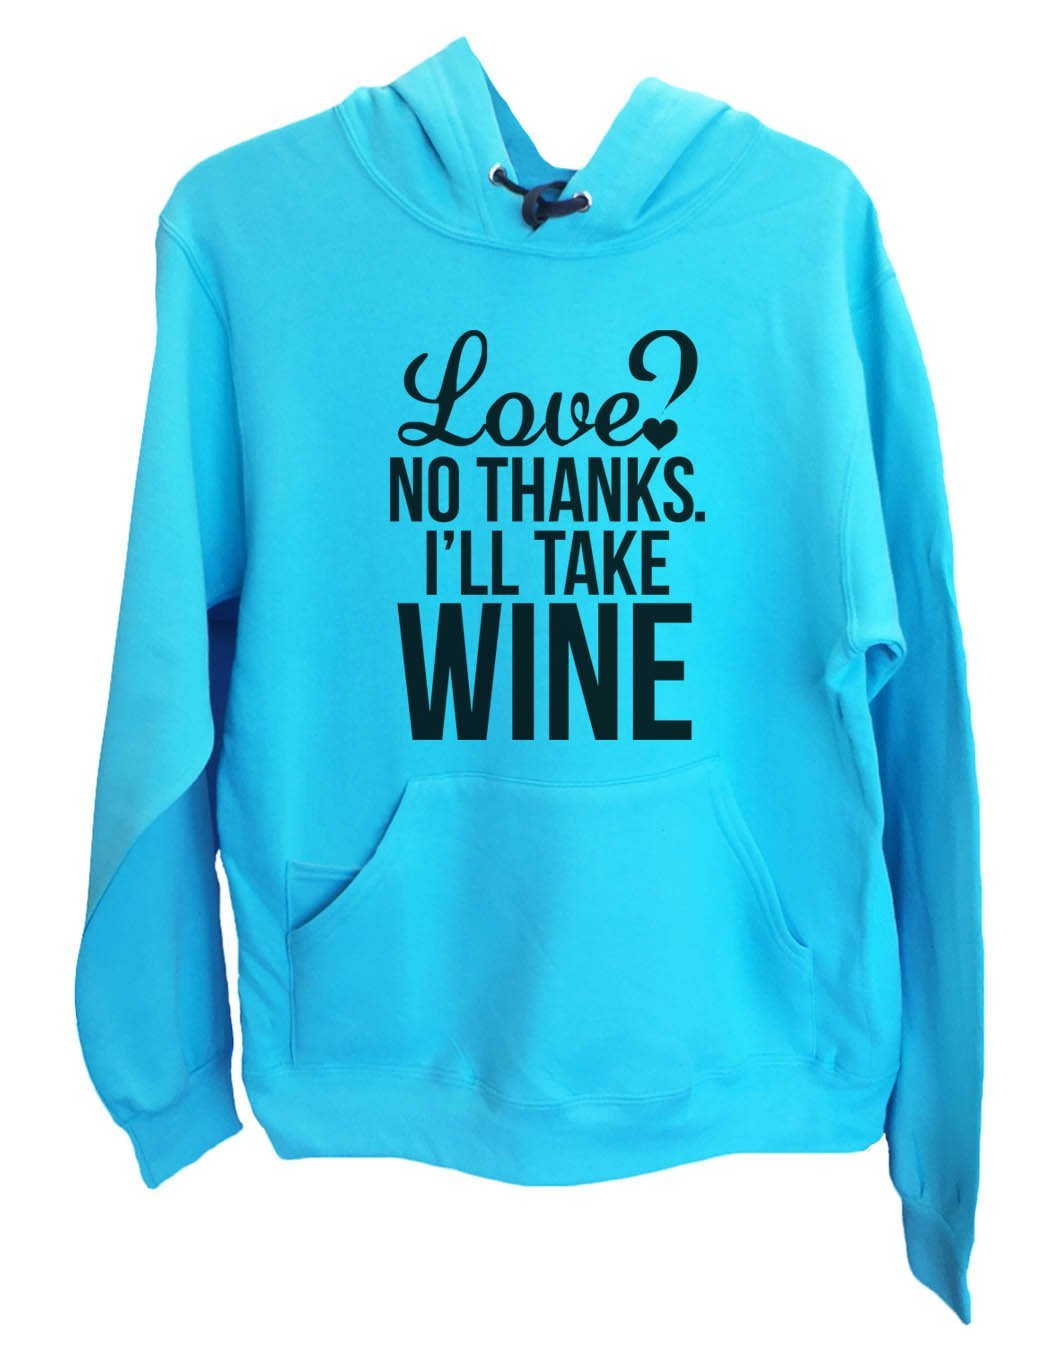 UNISEX HOODIE - Love? No Thanks. I'Ll Take Wine - FUNNY MENS AND WOMENS HOODED SWEATSHIRTS - 2137 Funny Shirt Small / Turquoise